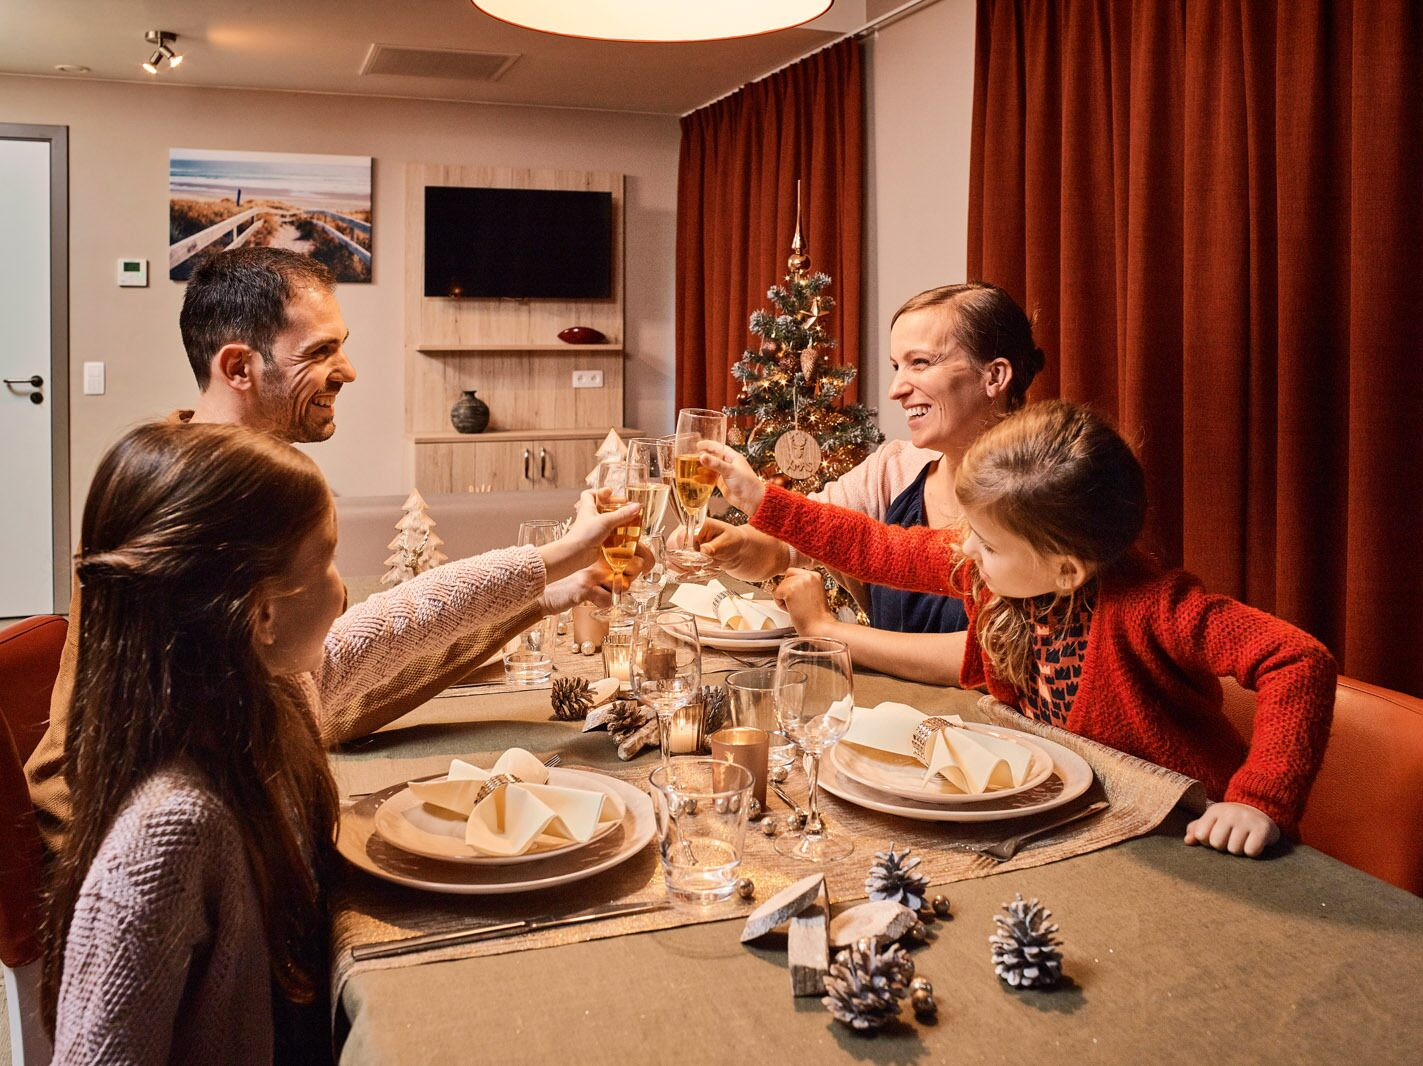 Family at the table - Christmas Holidays